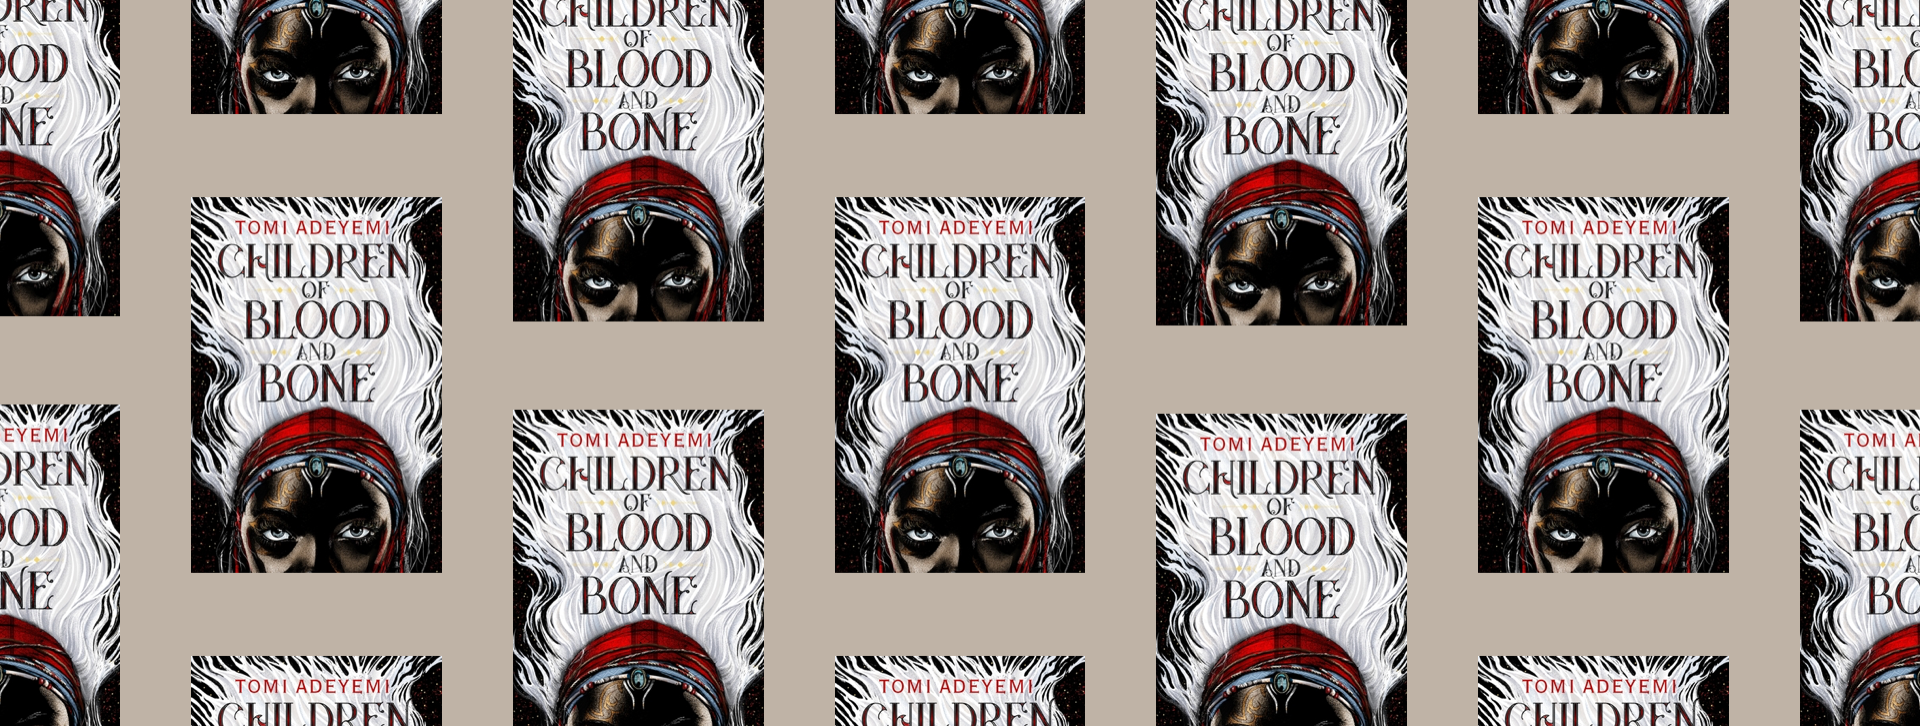 Children of Blood and Bone.png